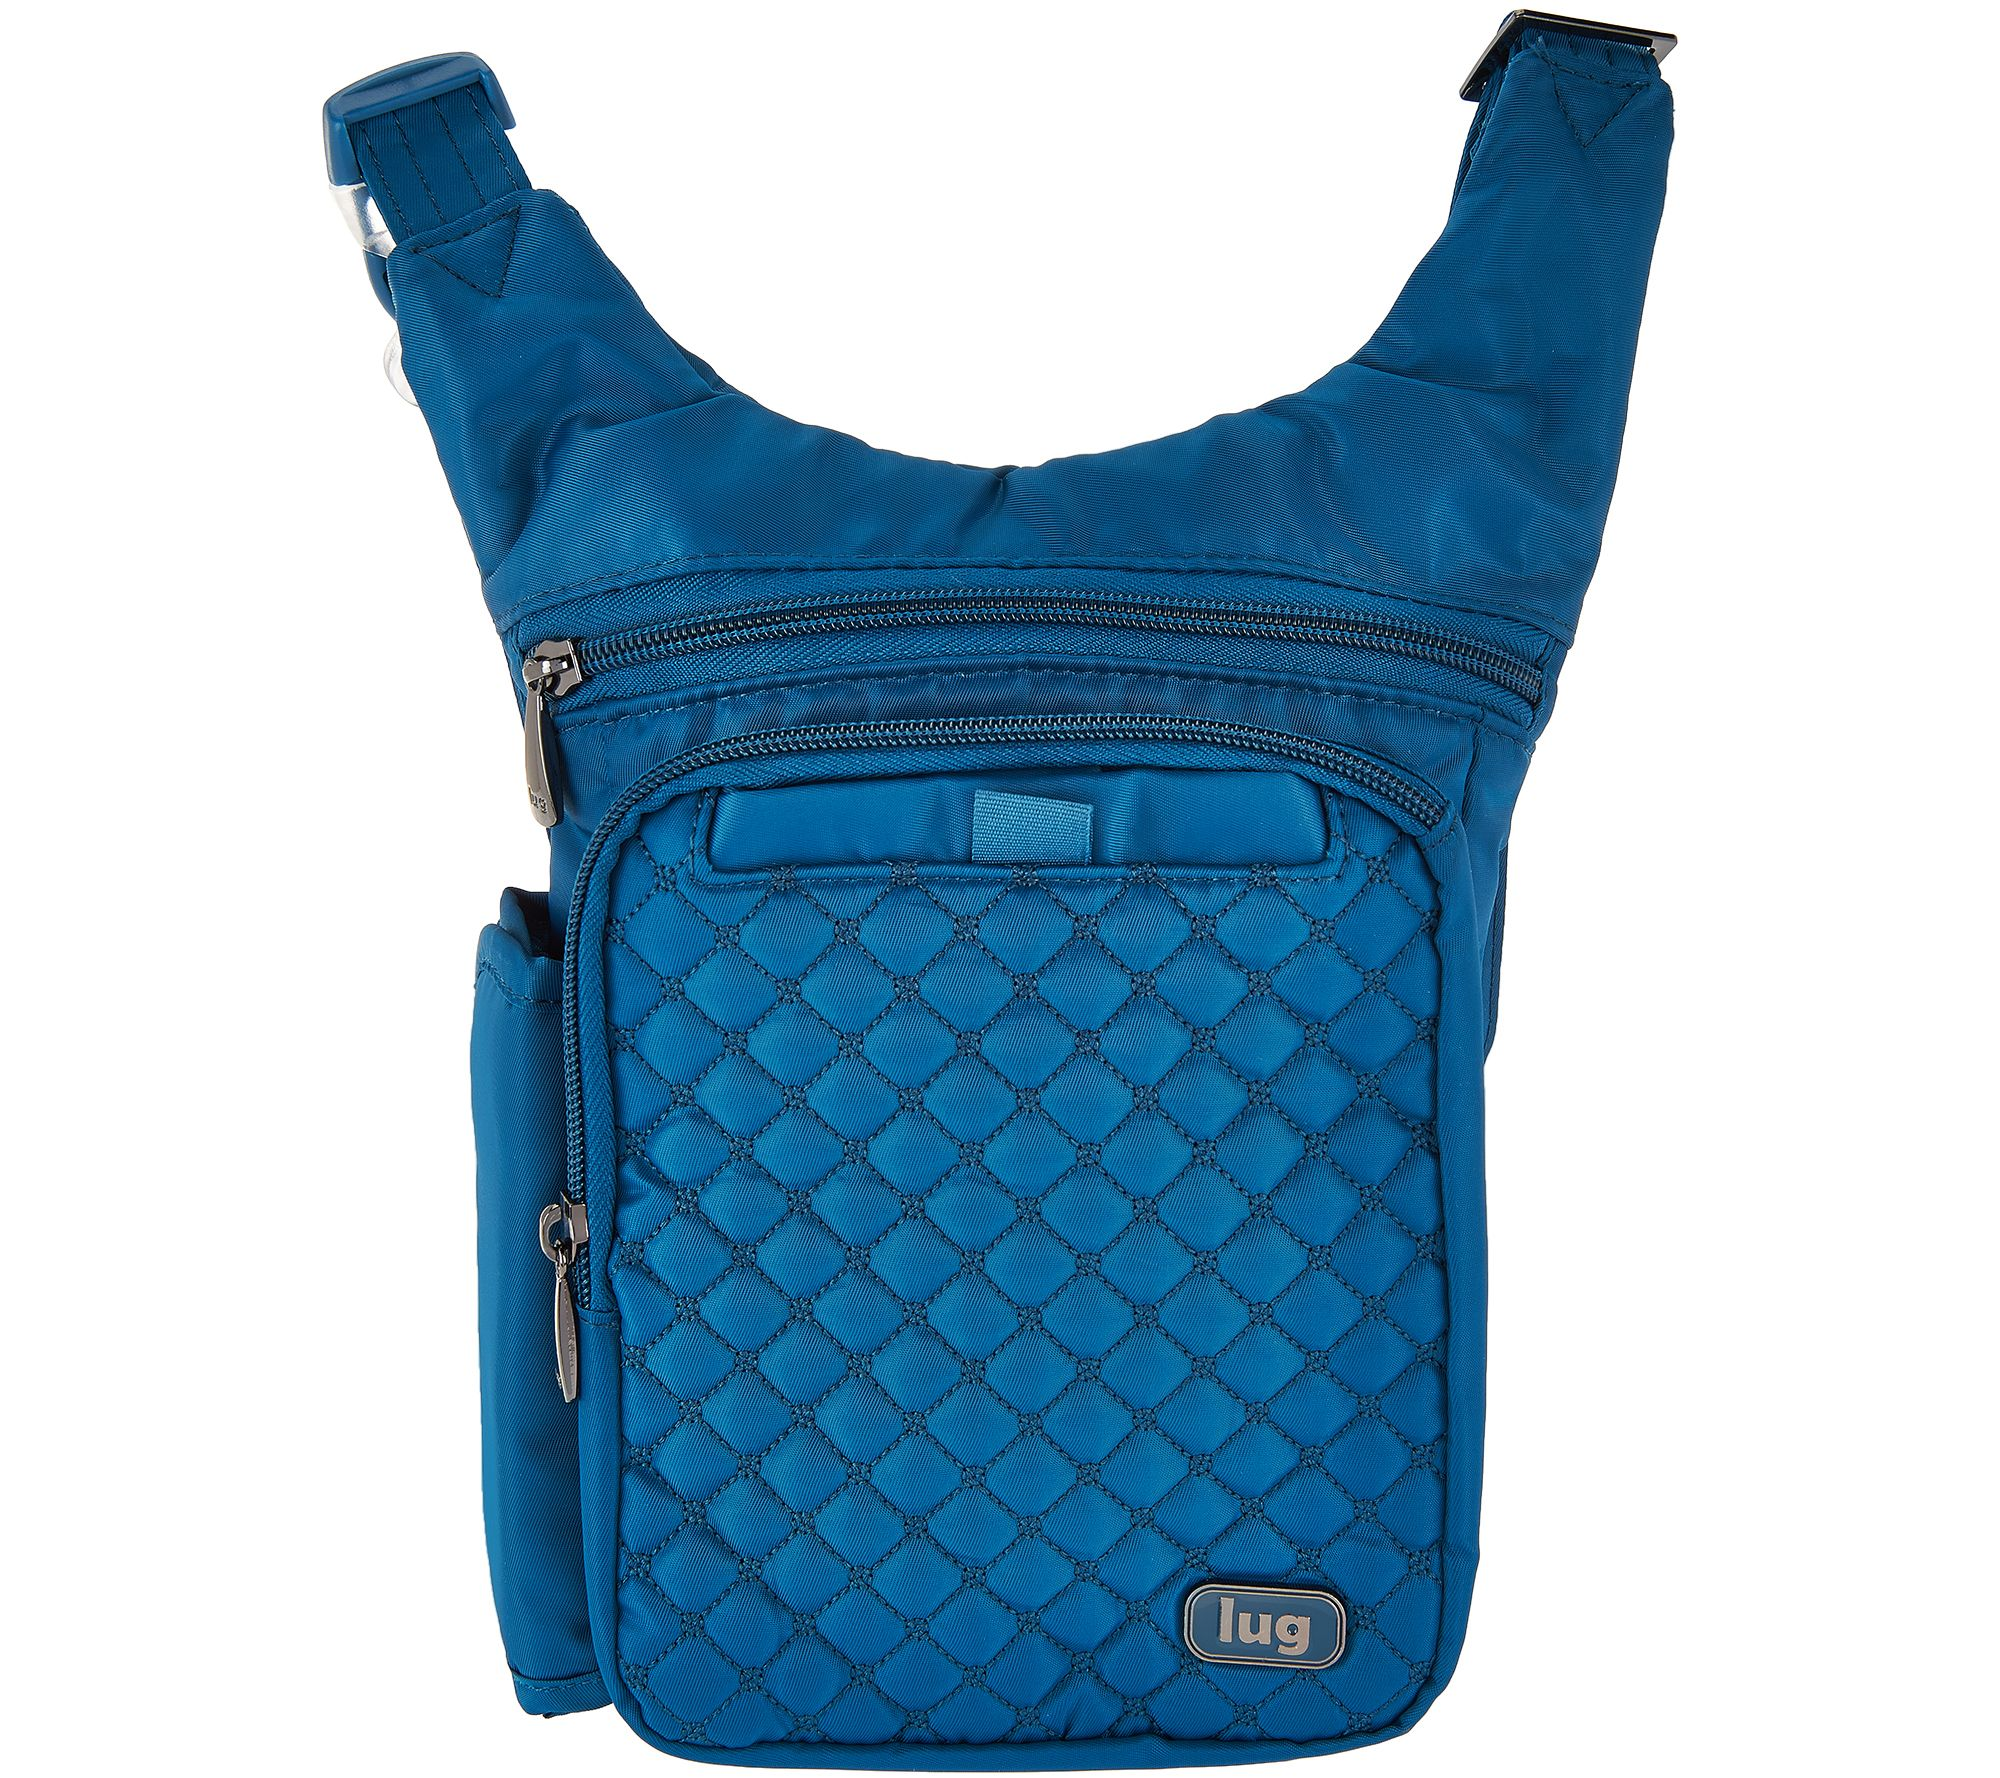 Lug Quilted RFID Crossbody & Waist Pack - Hopper